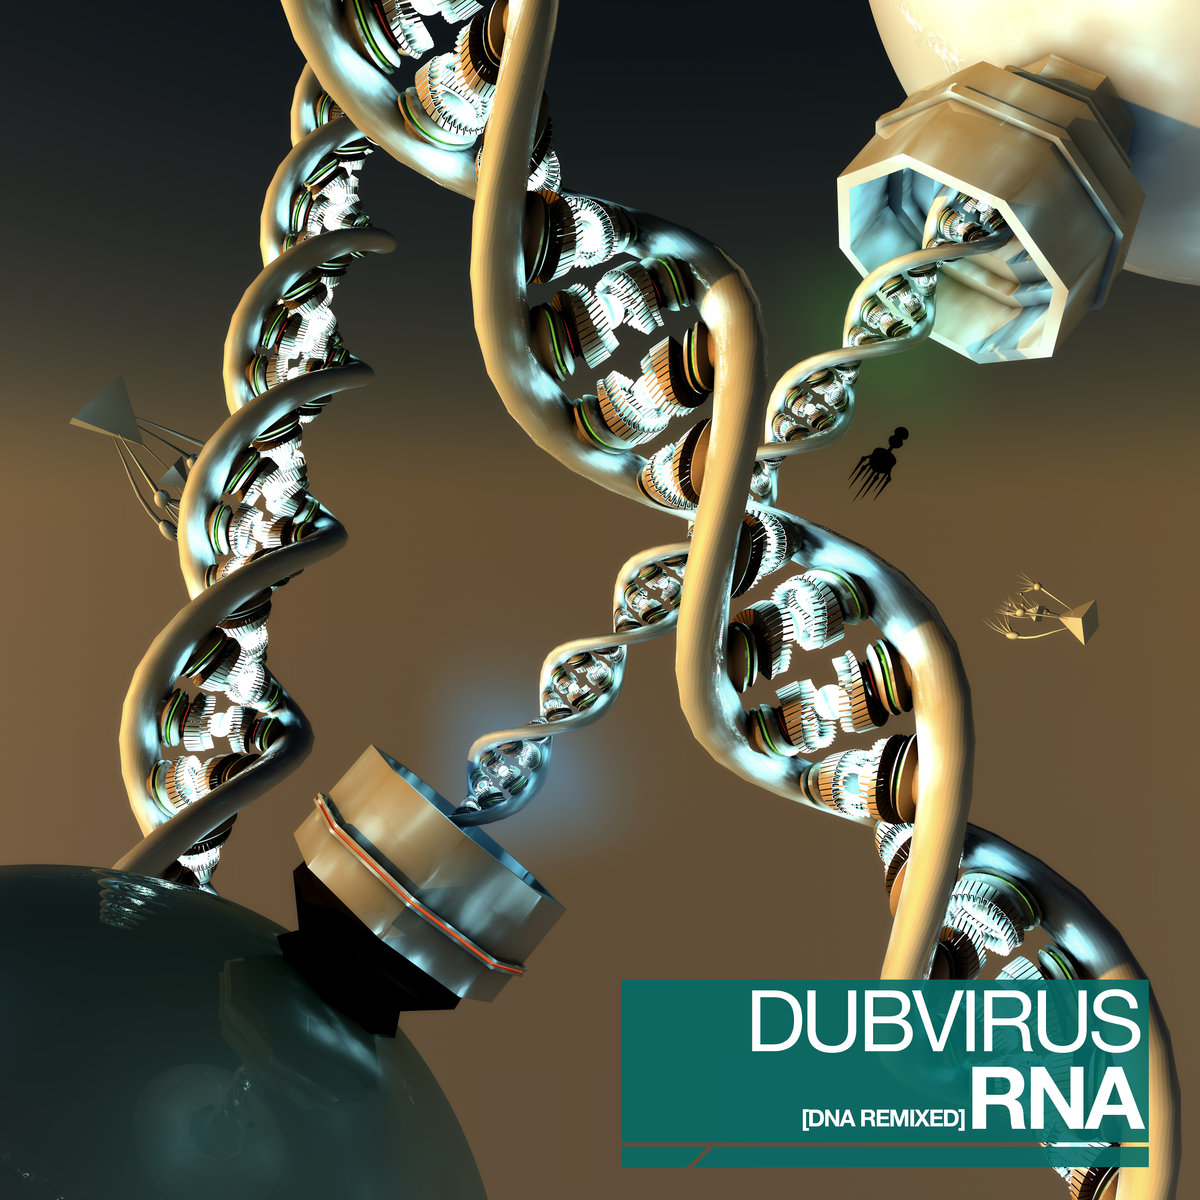 Dubvirus - Bridging The Gap (MiHKAL Remix) @ 'RNA (DNA Remixed)' album (bass, dubvirus)